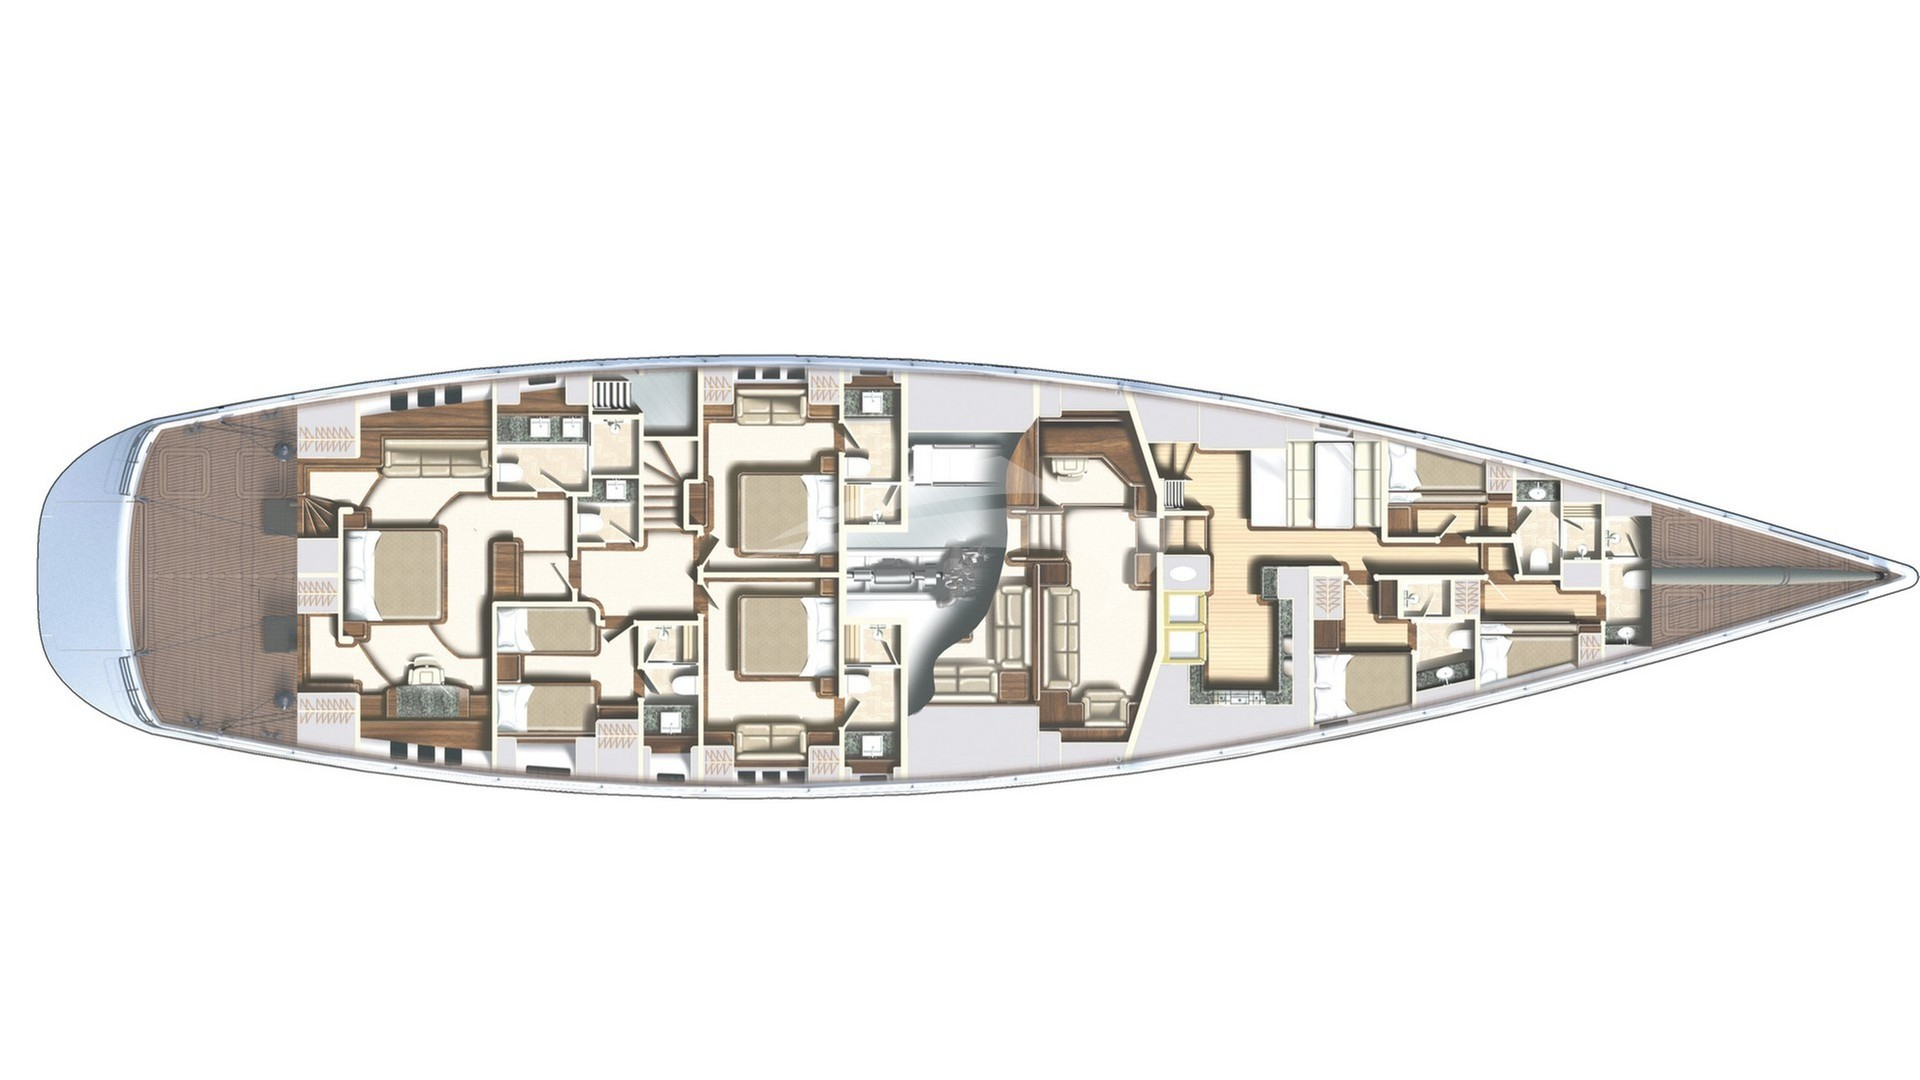 Luxury charter yacht layout diagram for TWILIGHT